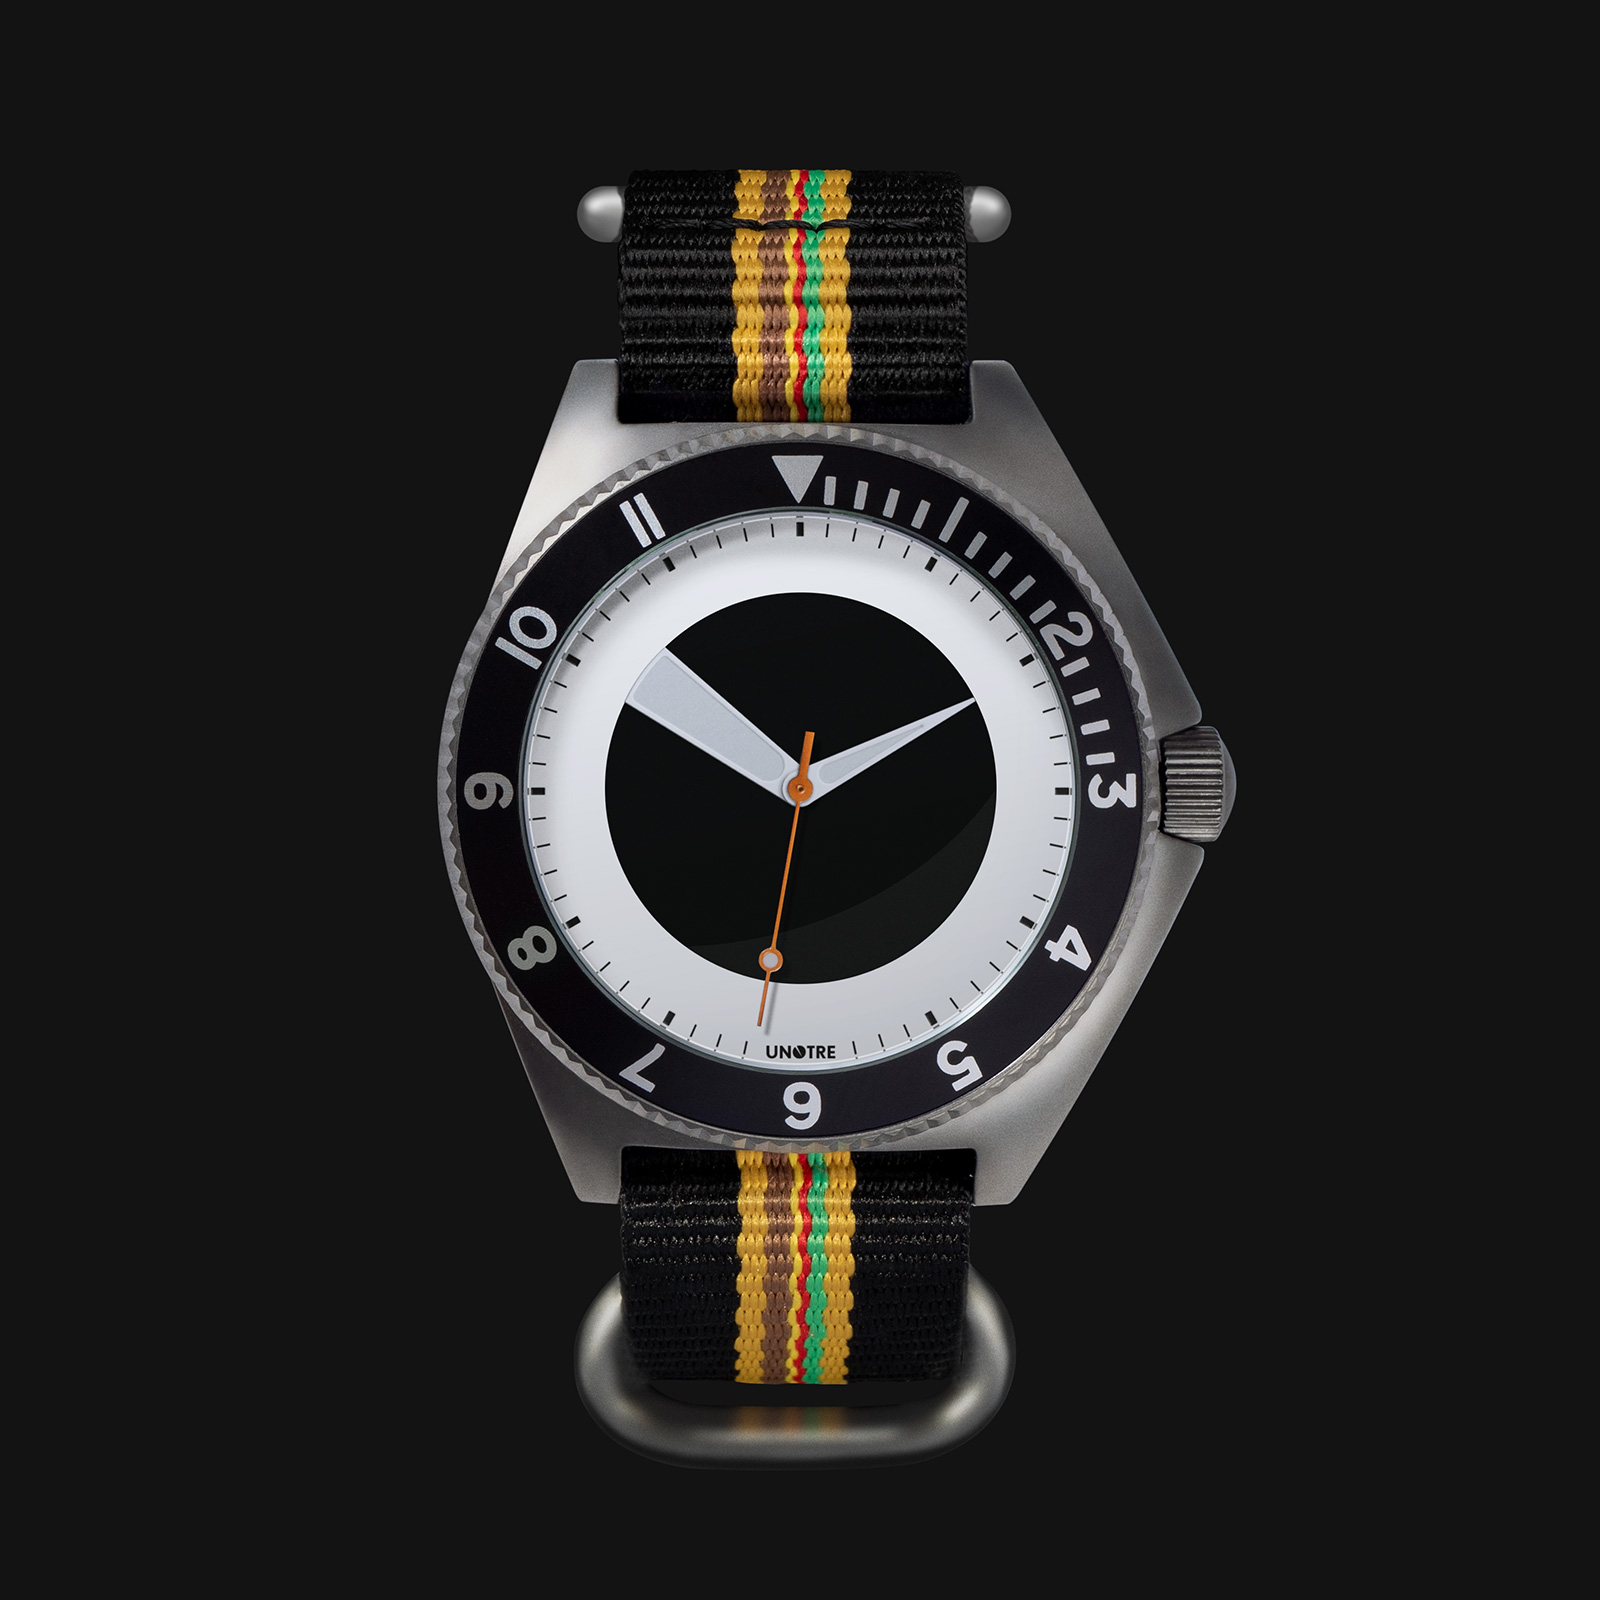 Electronic watch UNOTRE